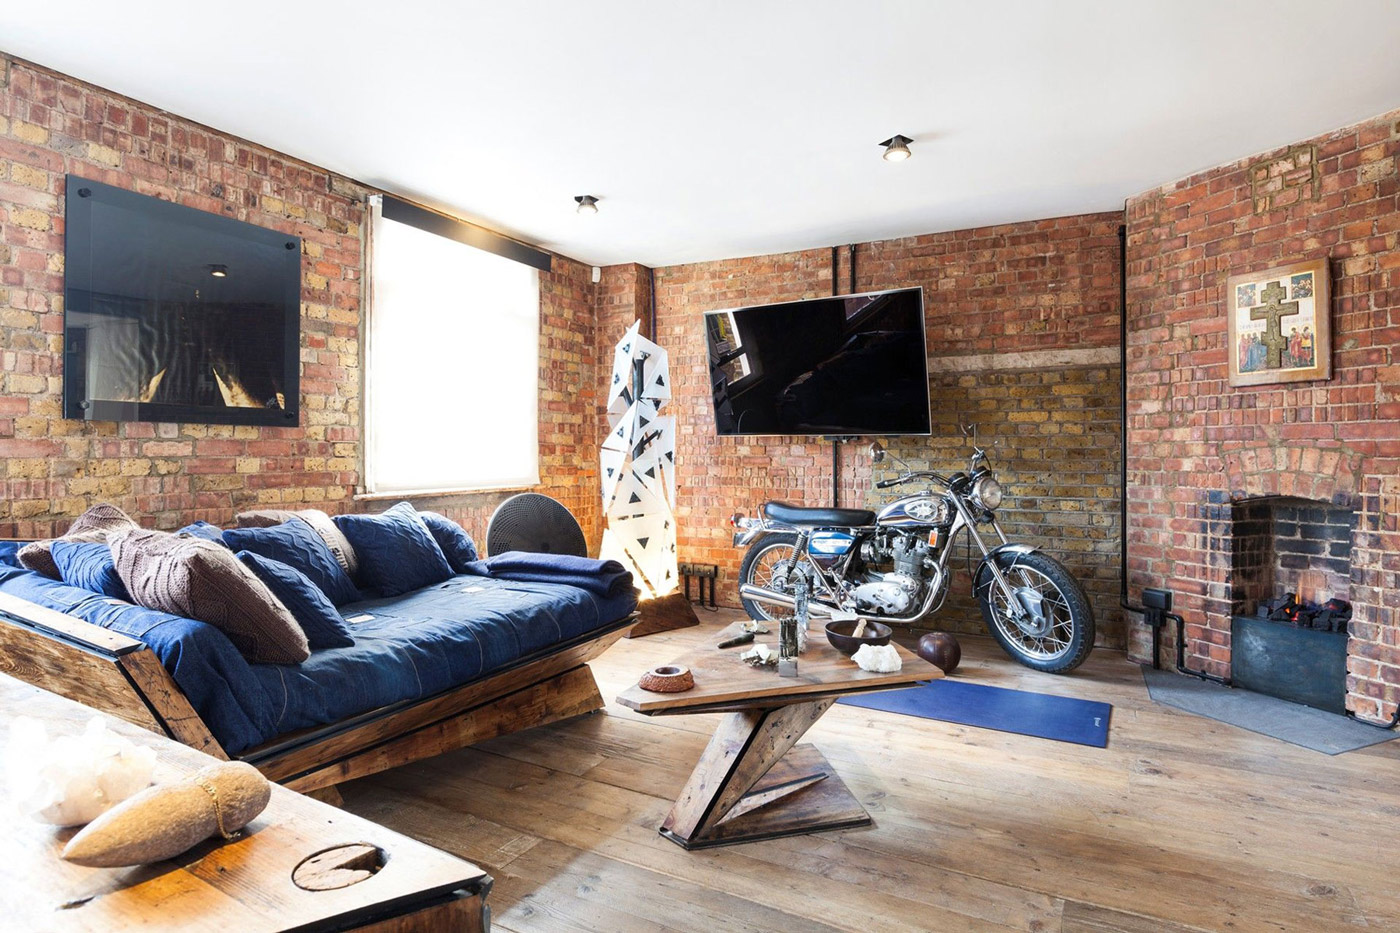 Archer Street Apartment in London, England